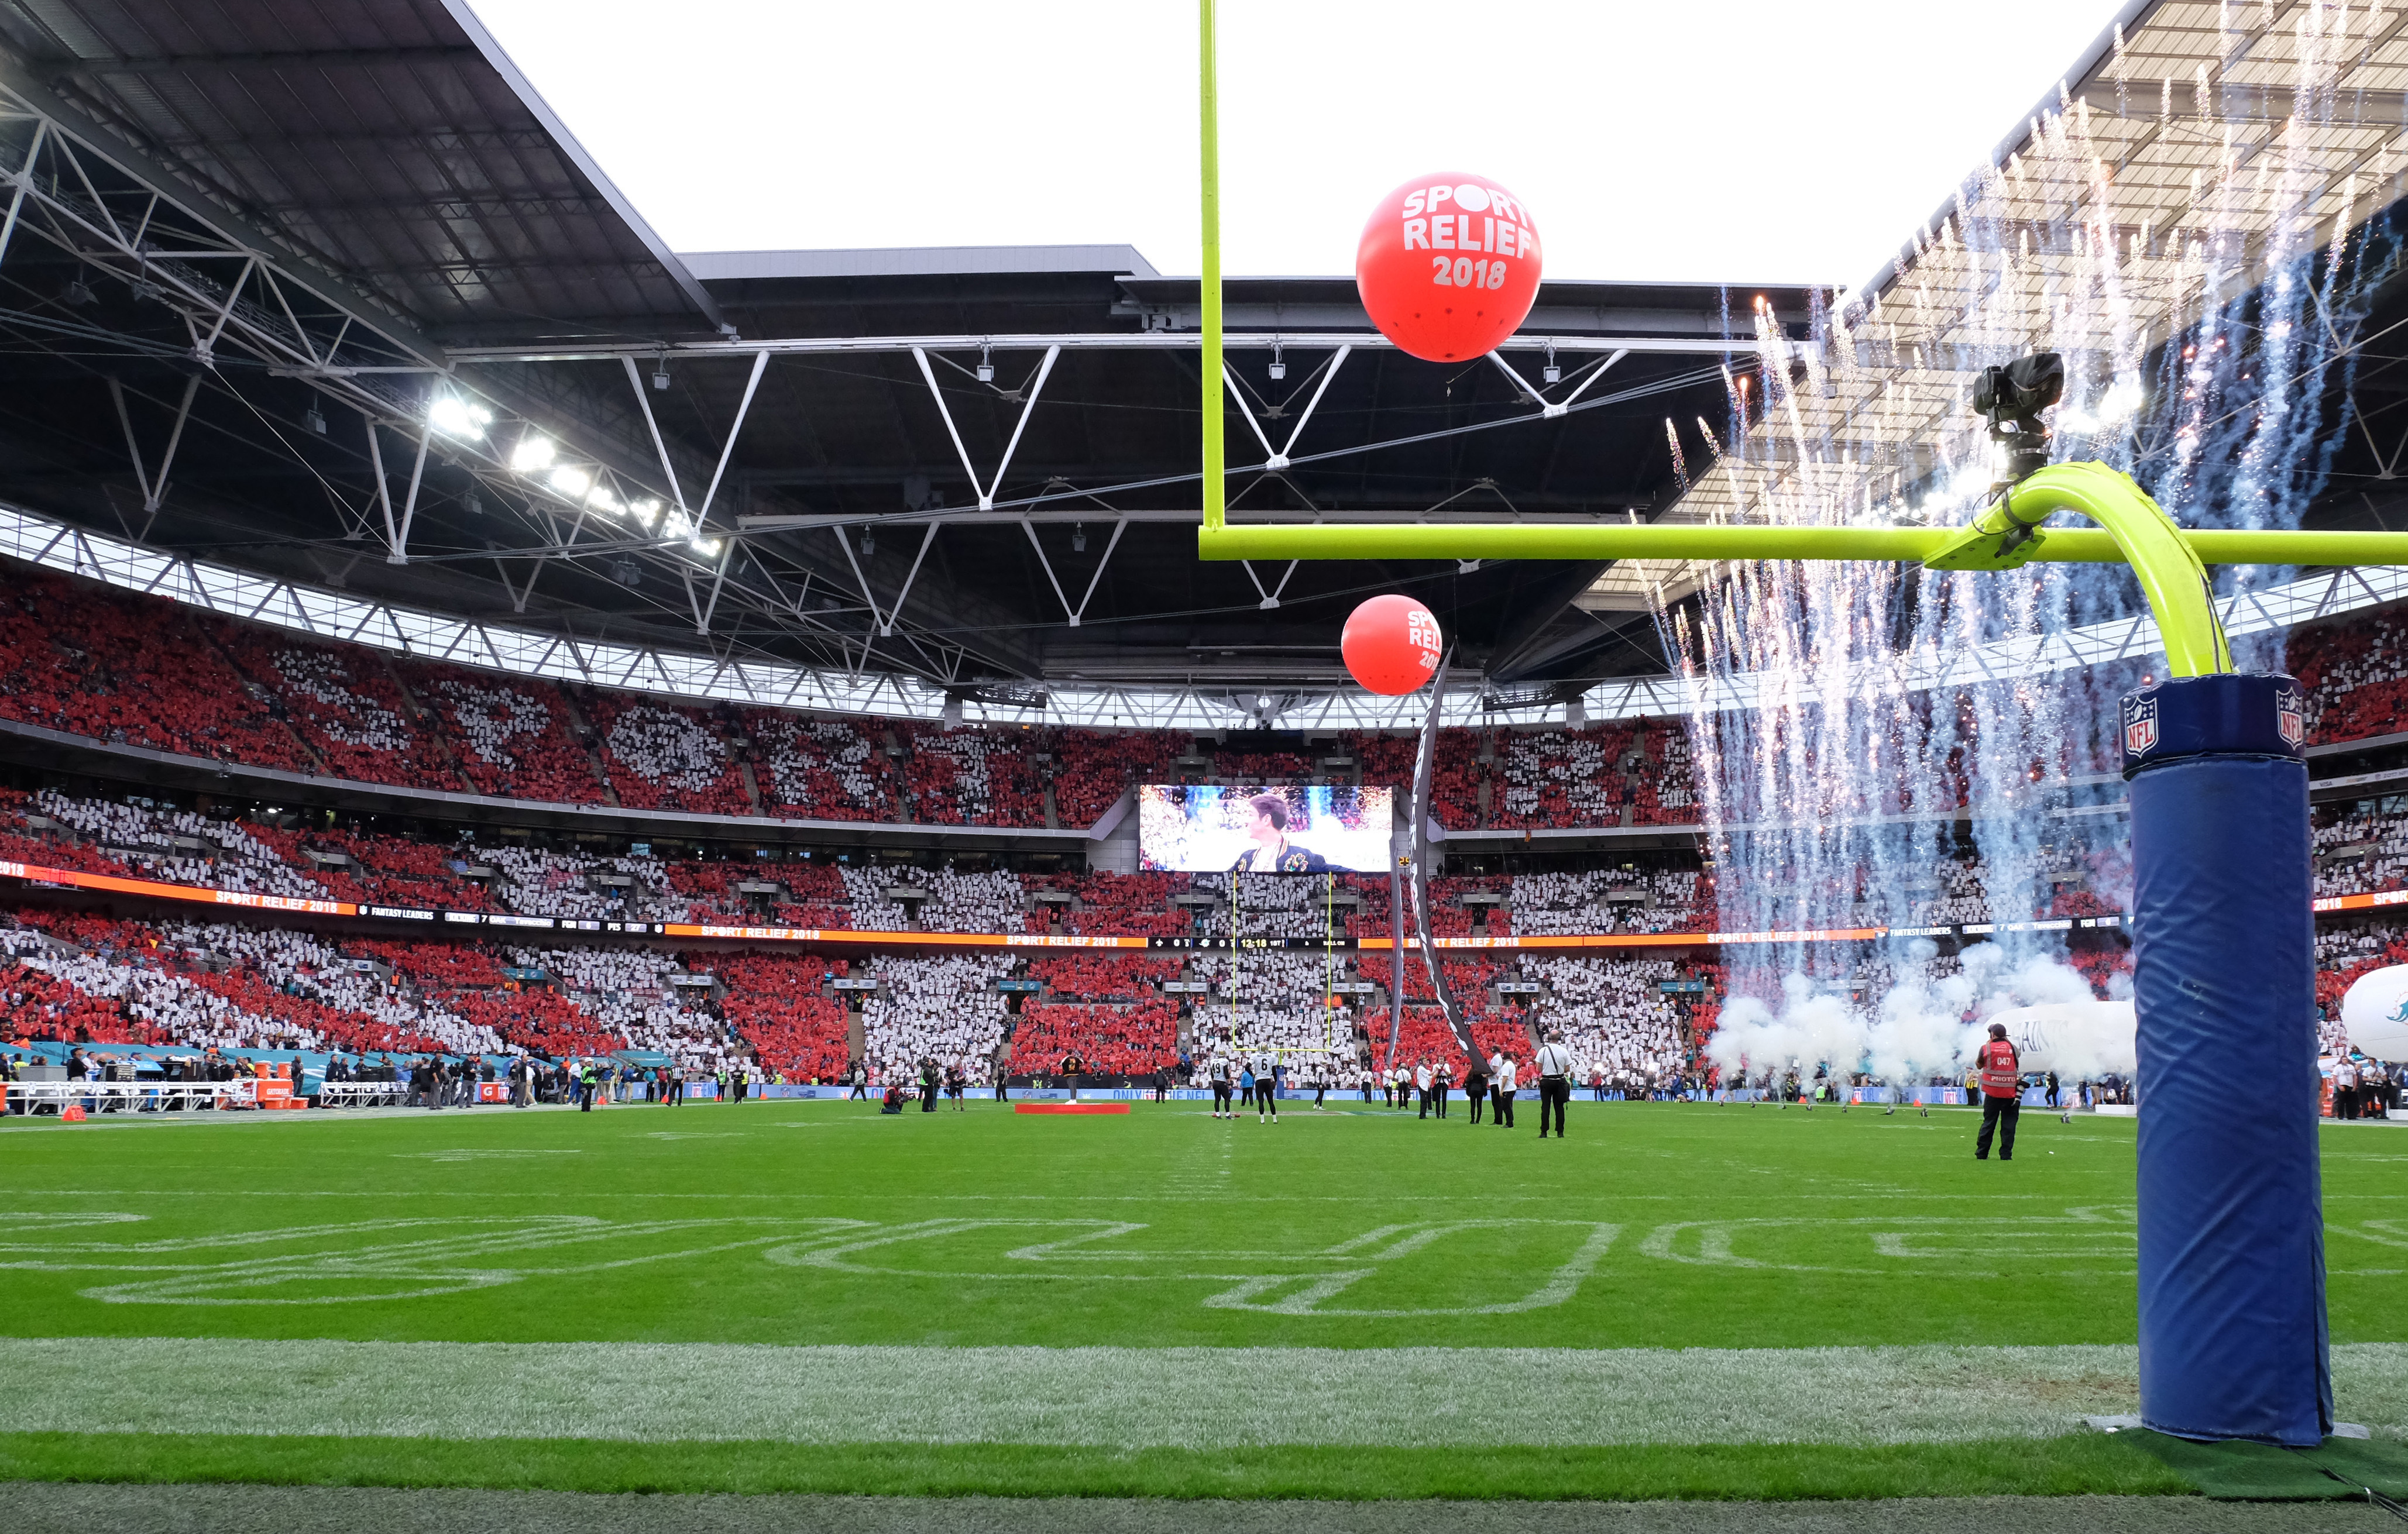 Let SMC Coach Hire take you to and from any NFL London game.